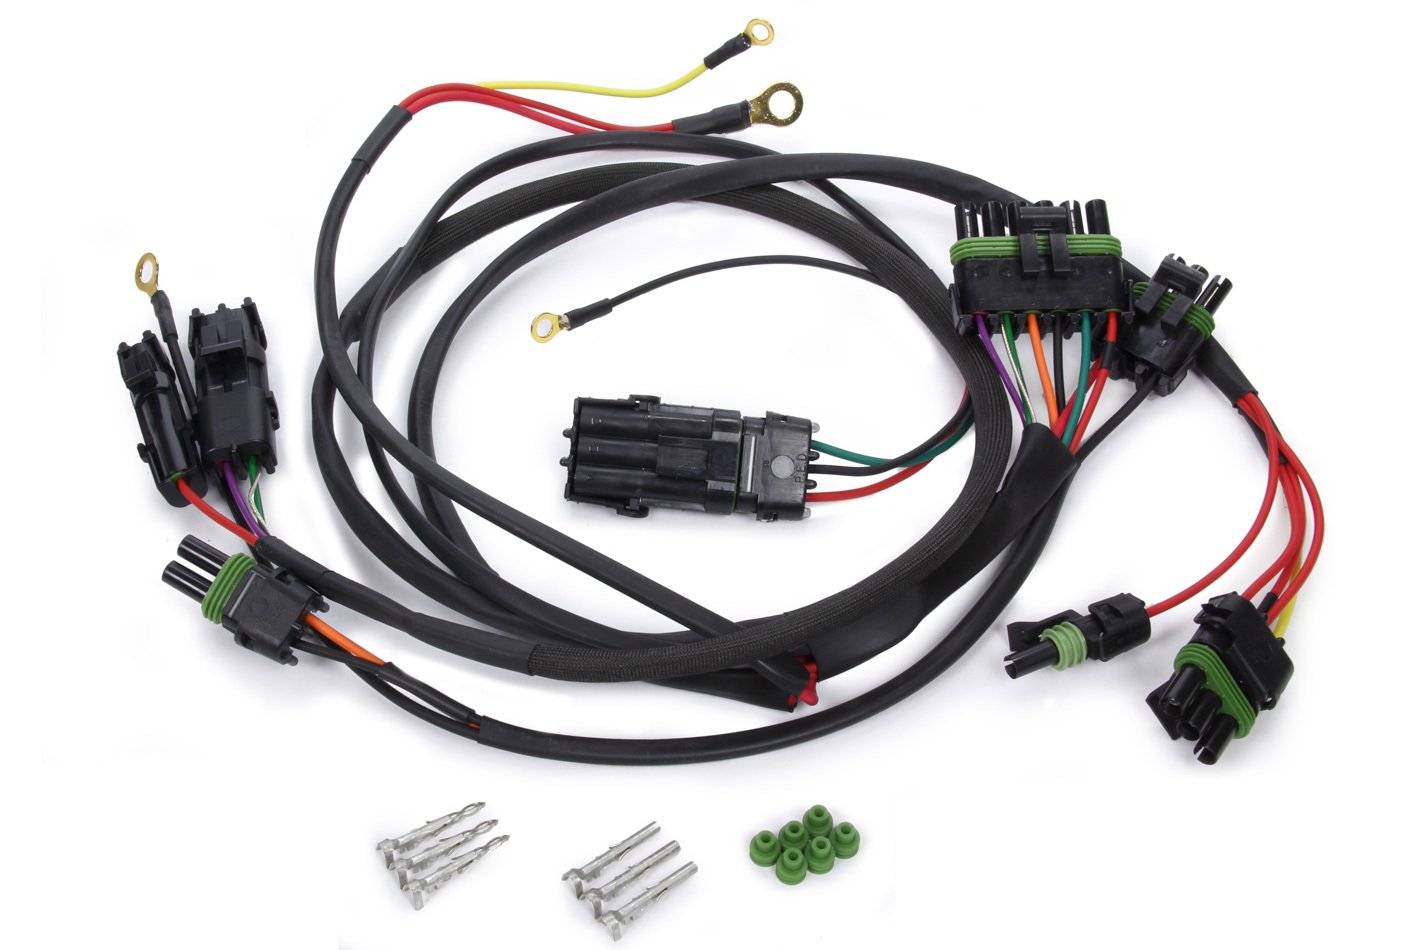 QuickCar 50-2051 Ignition Wiring Harness, Weatherpack, Crane / Fast Ignition Box, Kit